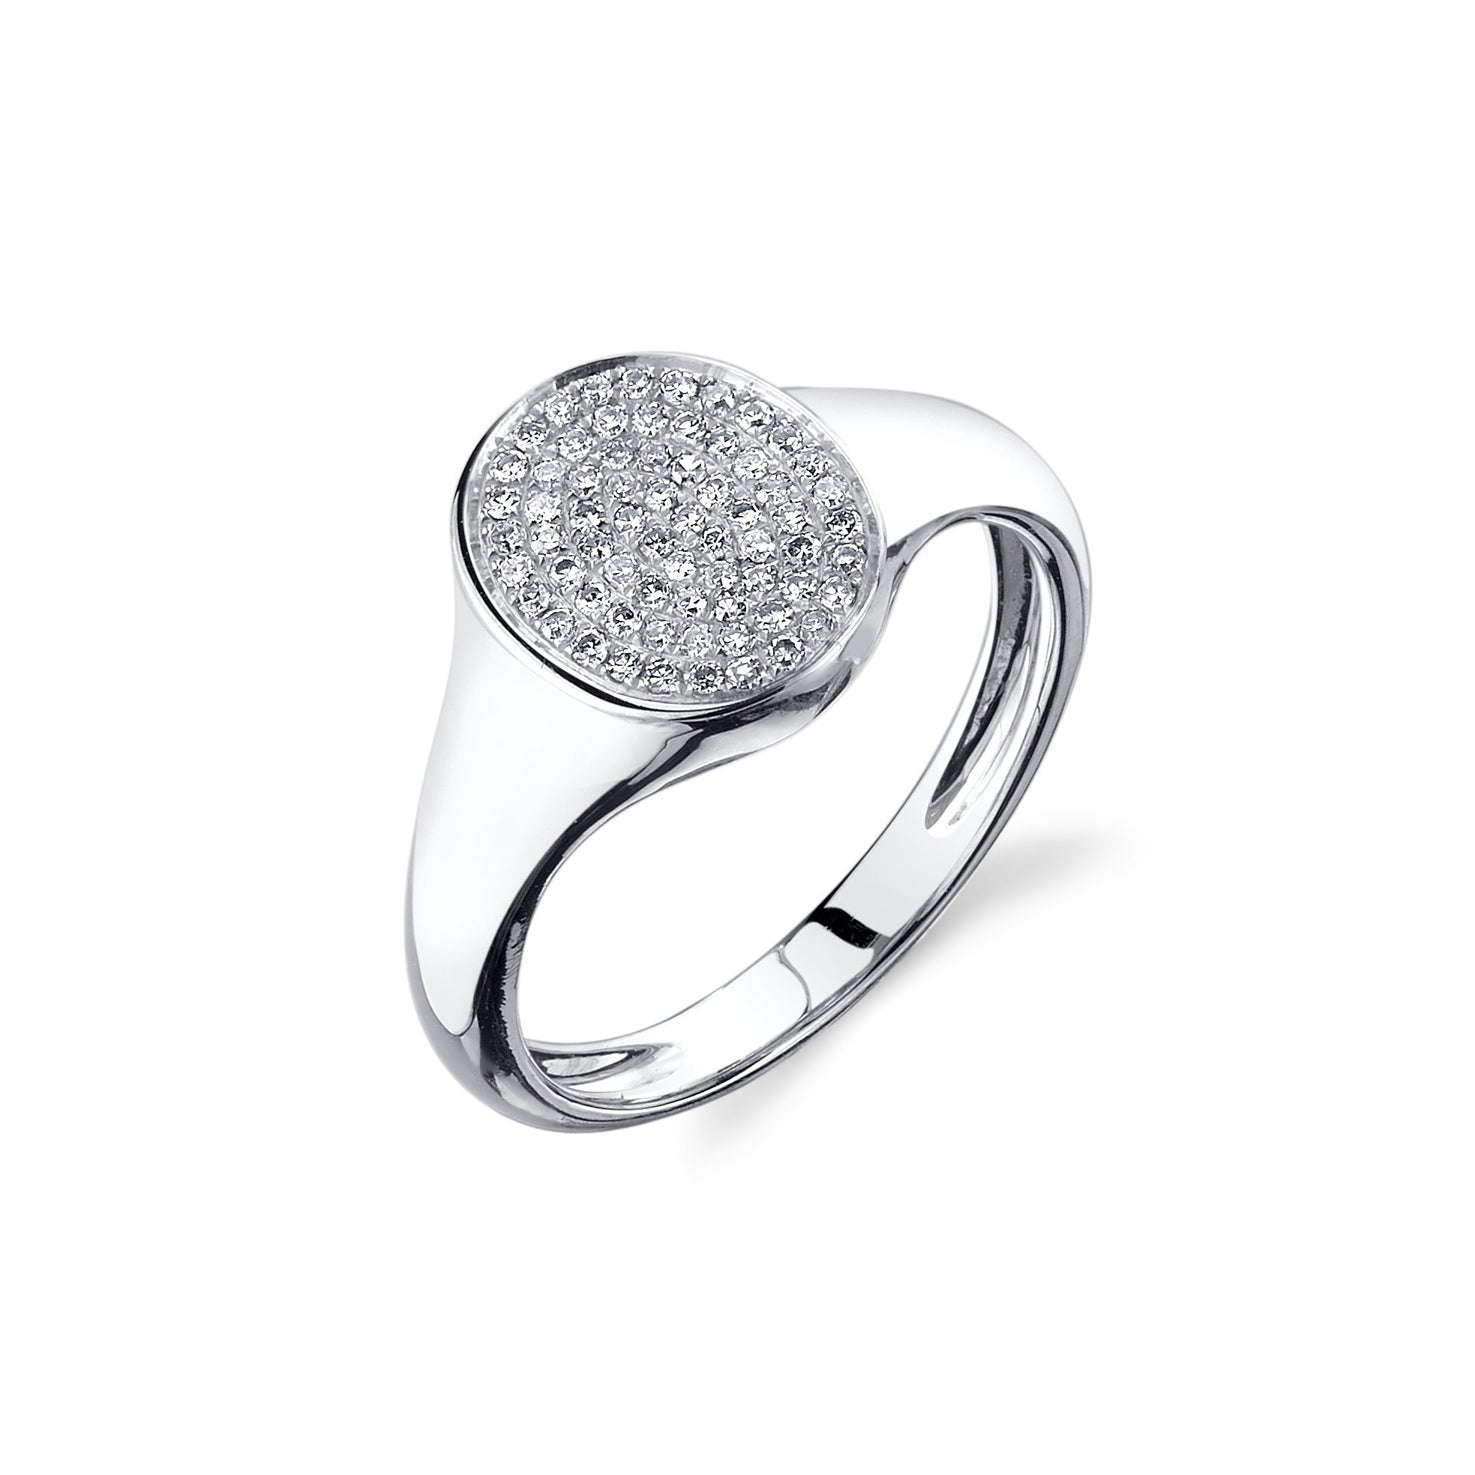 Disc Signet Ring With White Pavé Diamonds - Gabriela Artigas